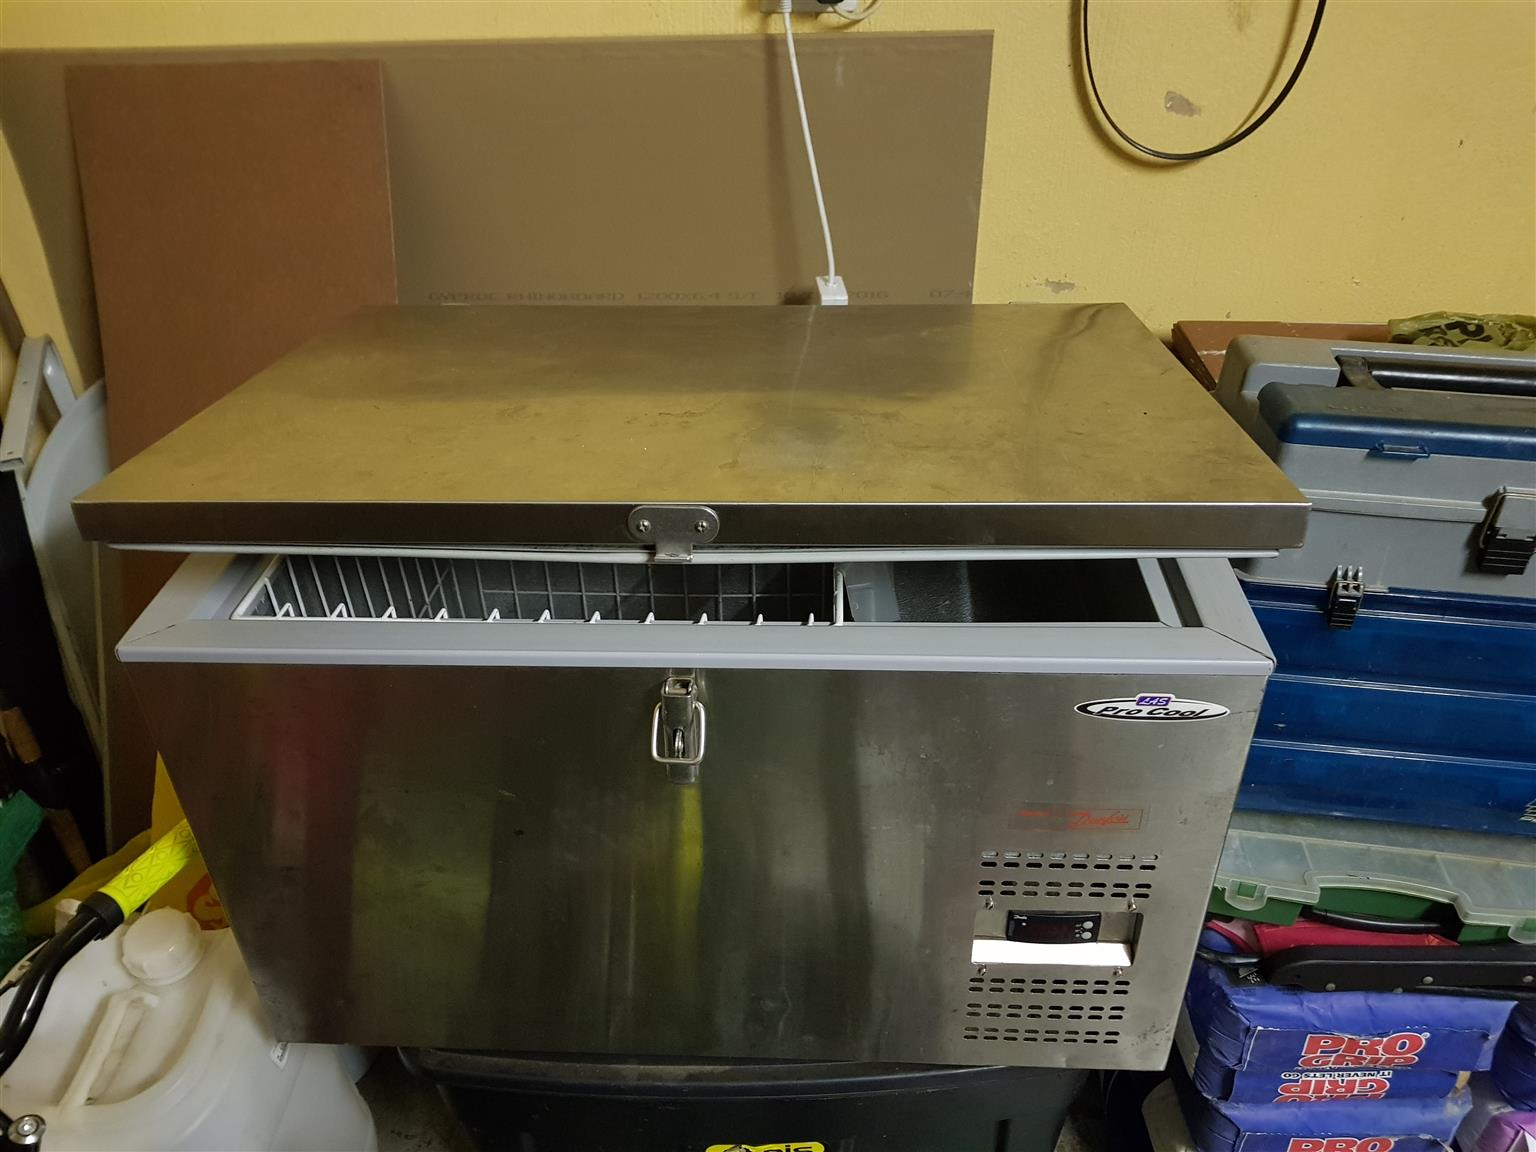 90 Litre LA Sport Pro Cool fridge